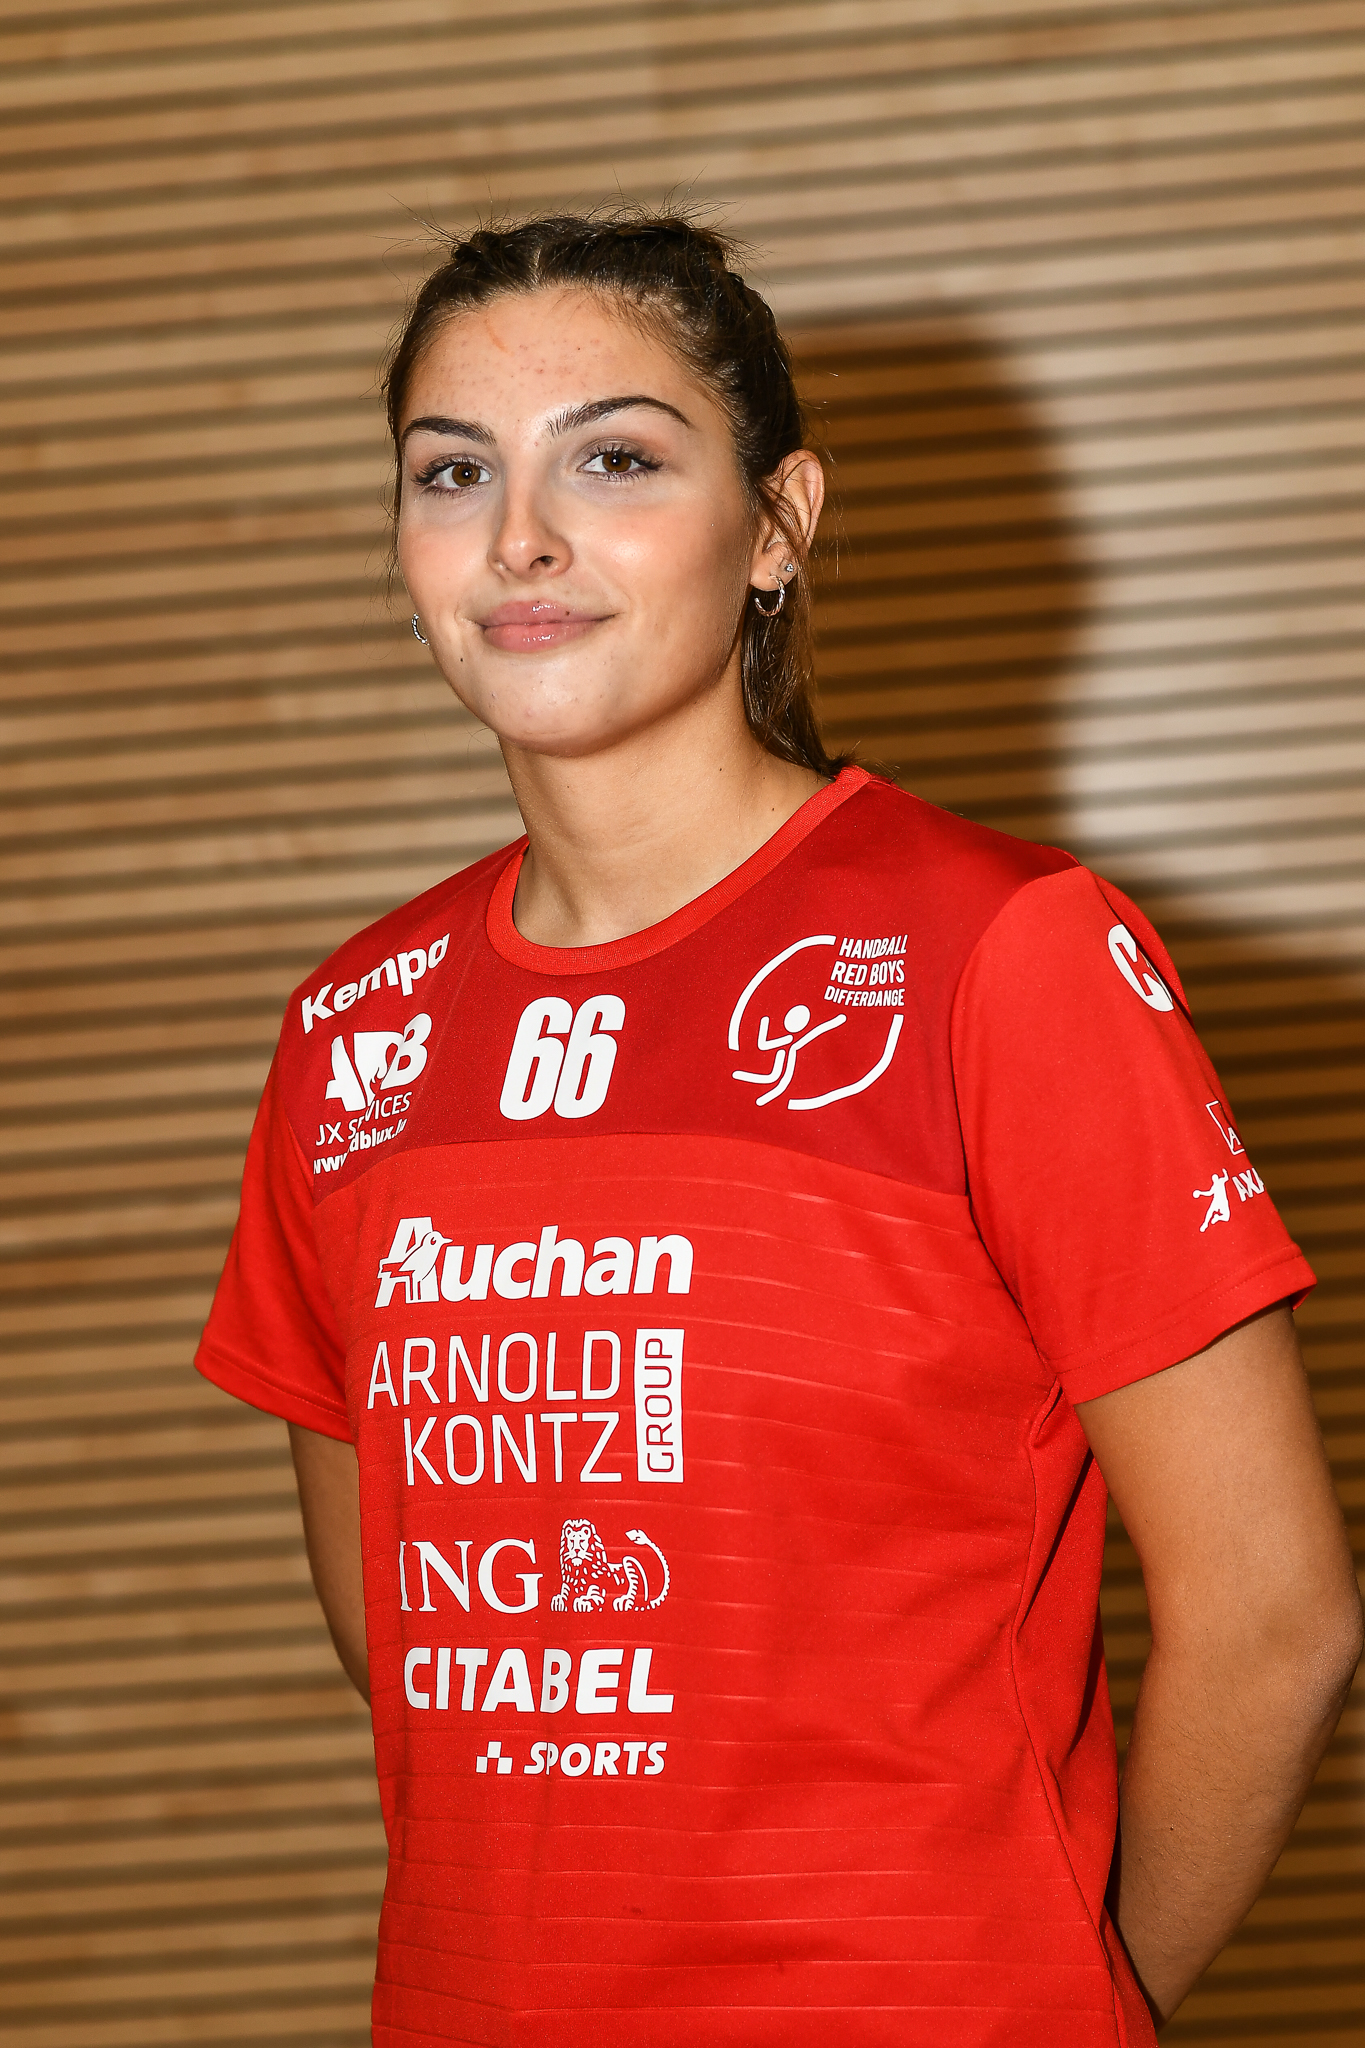 https://handball.lu/redboys/wp-content/uploads/2020/09/VAL_5901-212.jpg